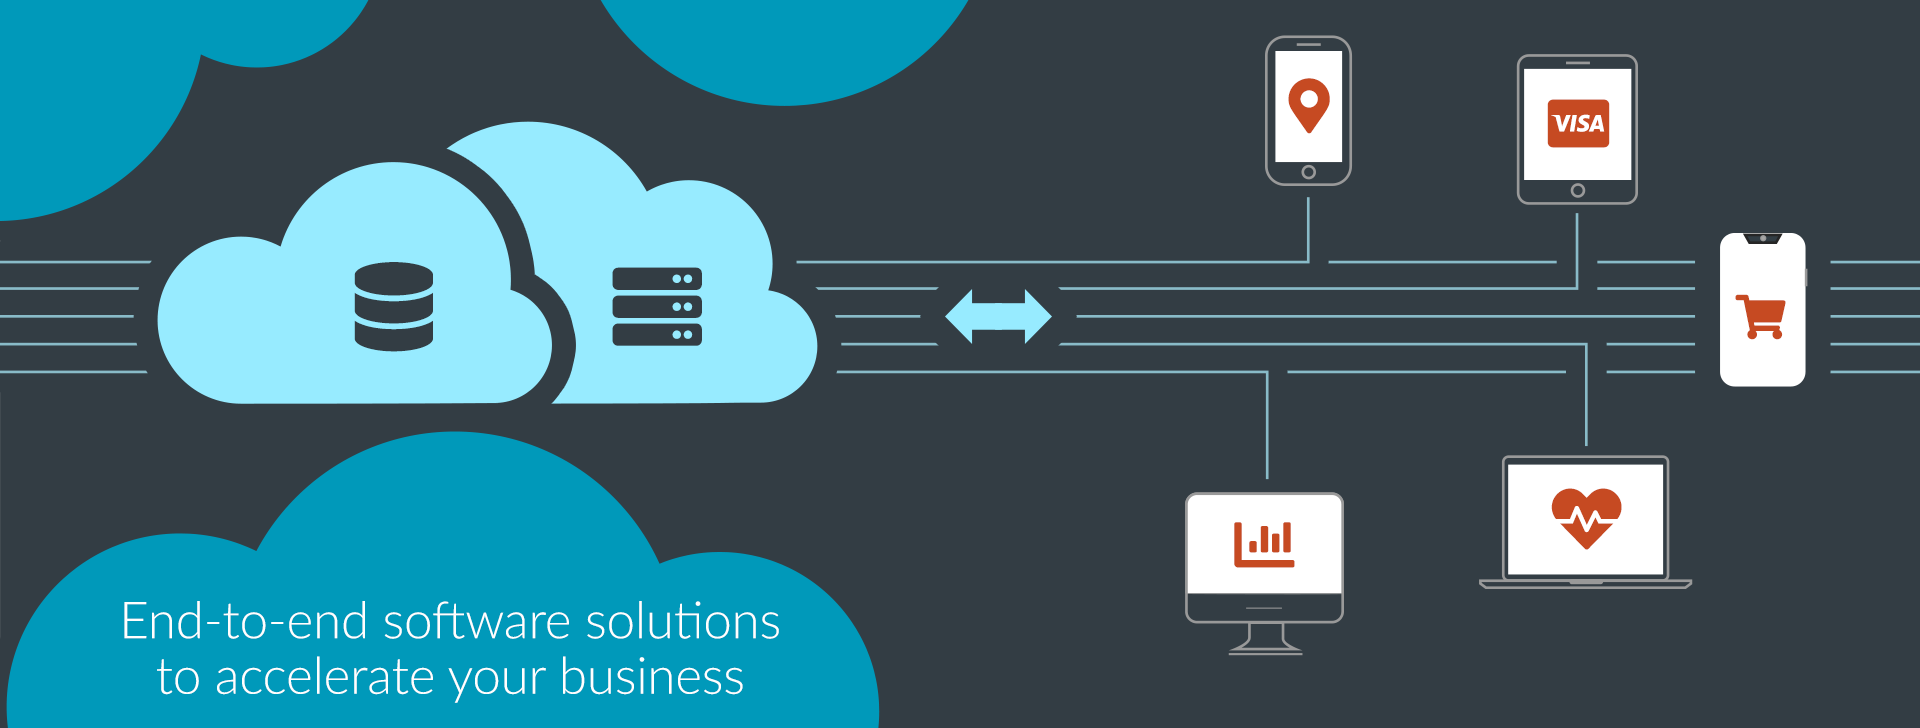 End-to-end software solutions to accelerate your business